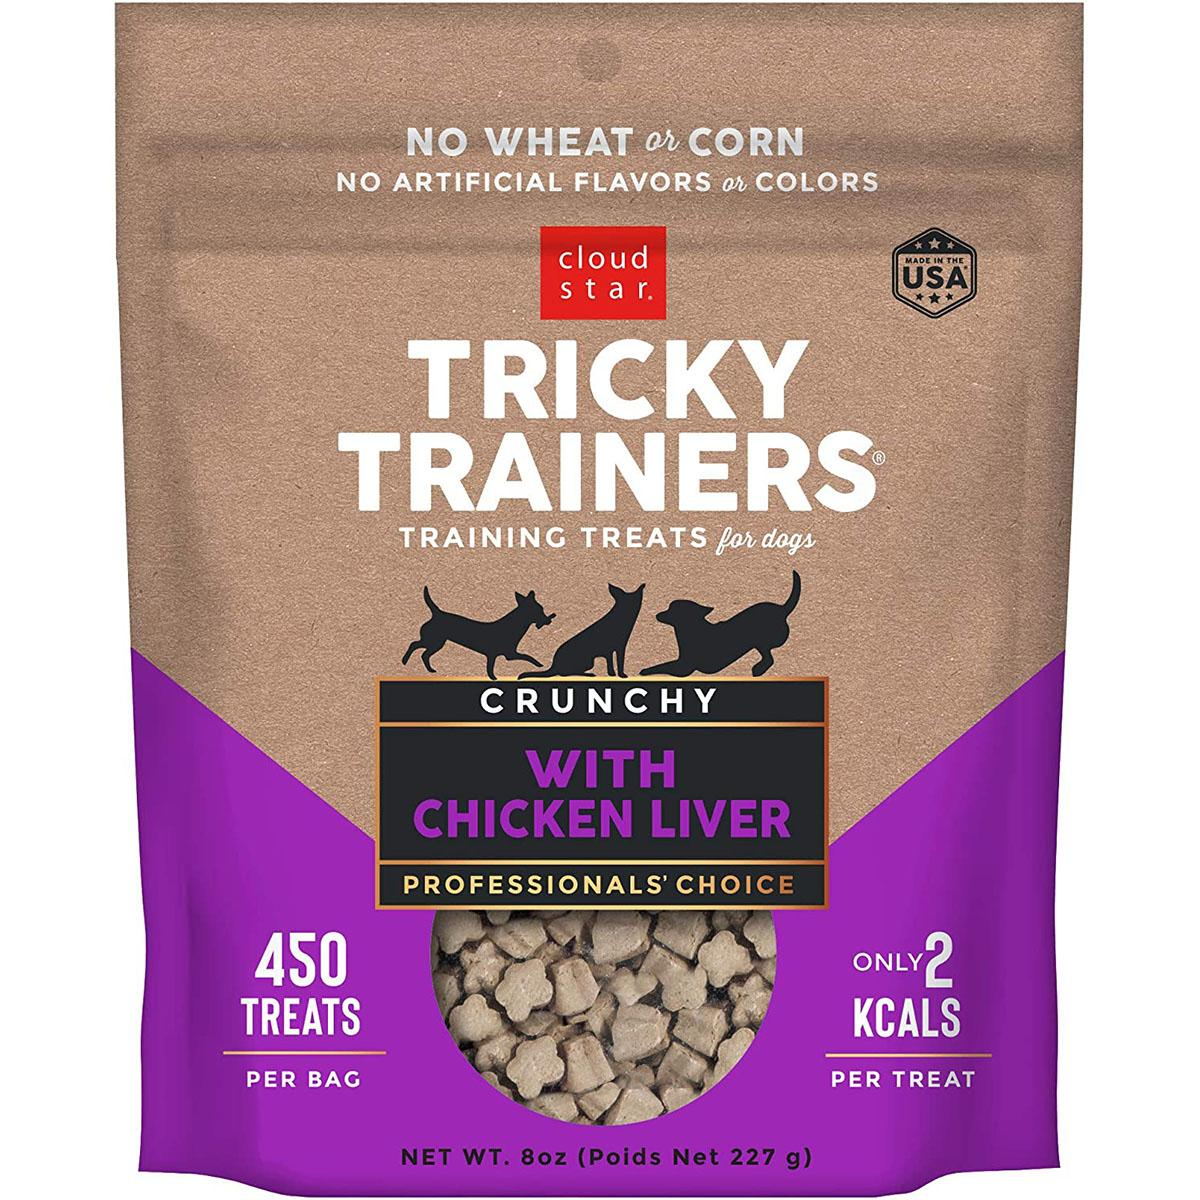 Cloud Star Crunchy Tricky Trainers Dog Treats - Chicken Liver Flavor